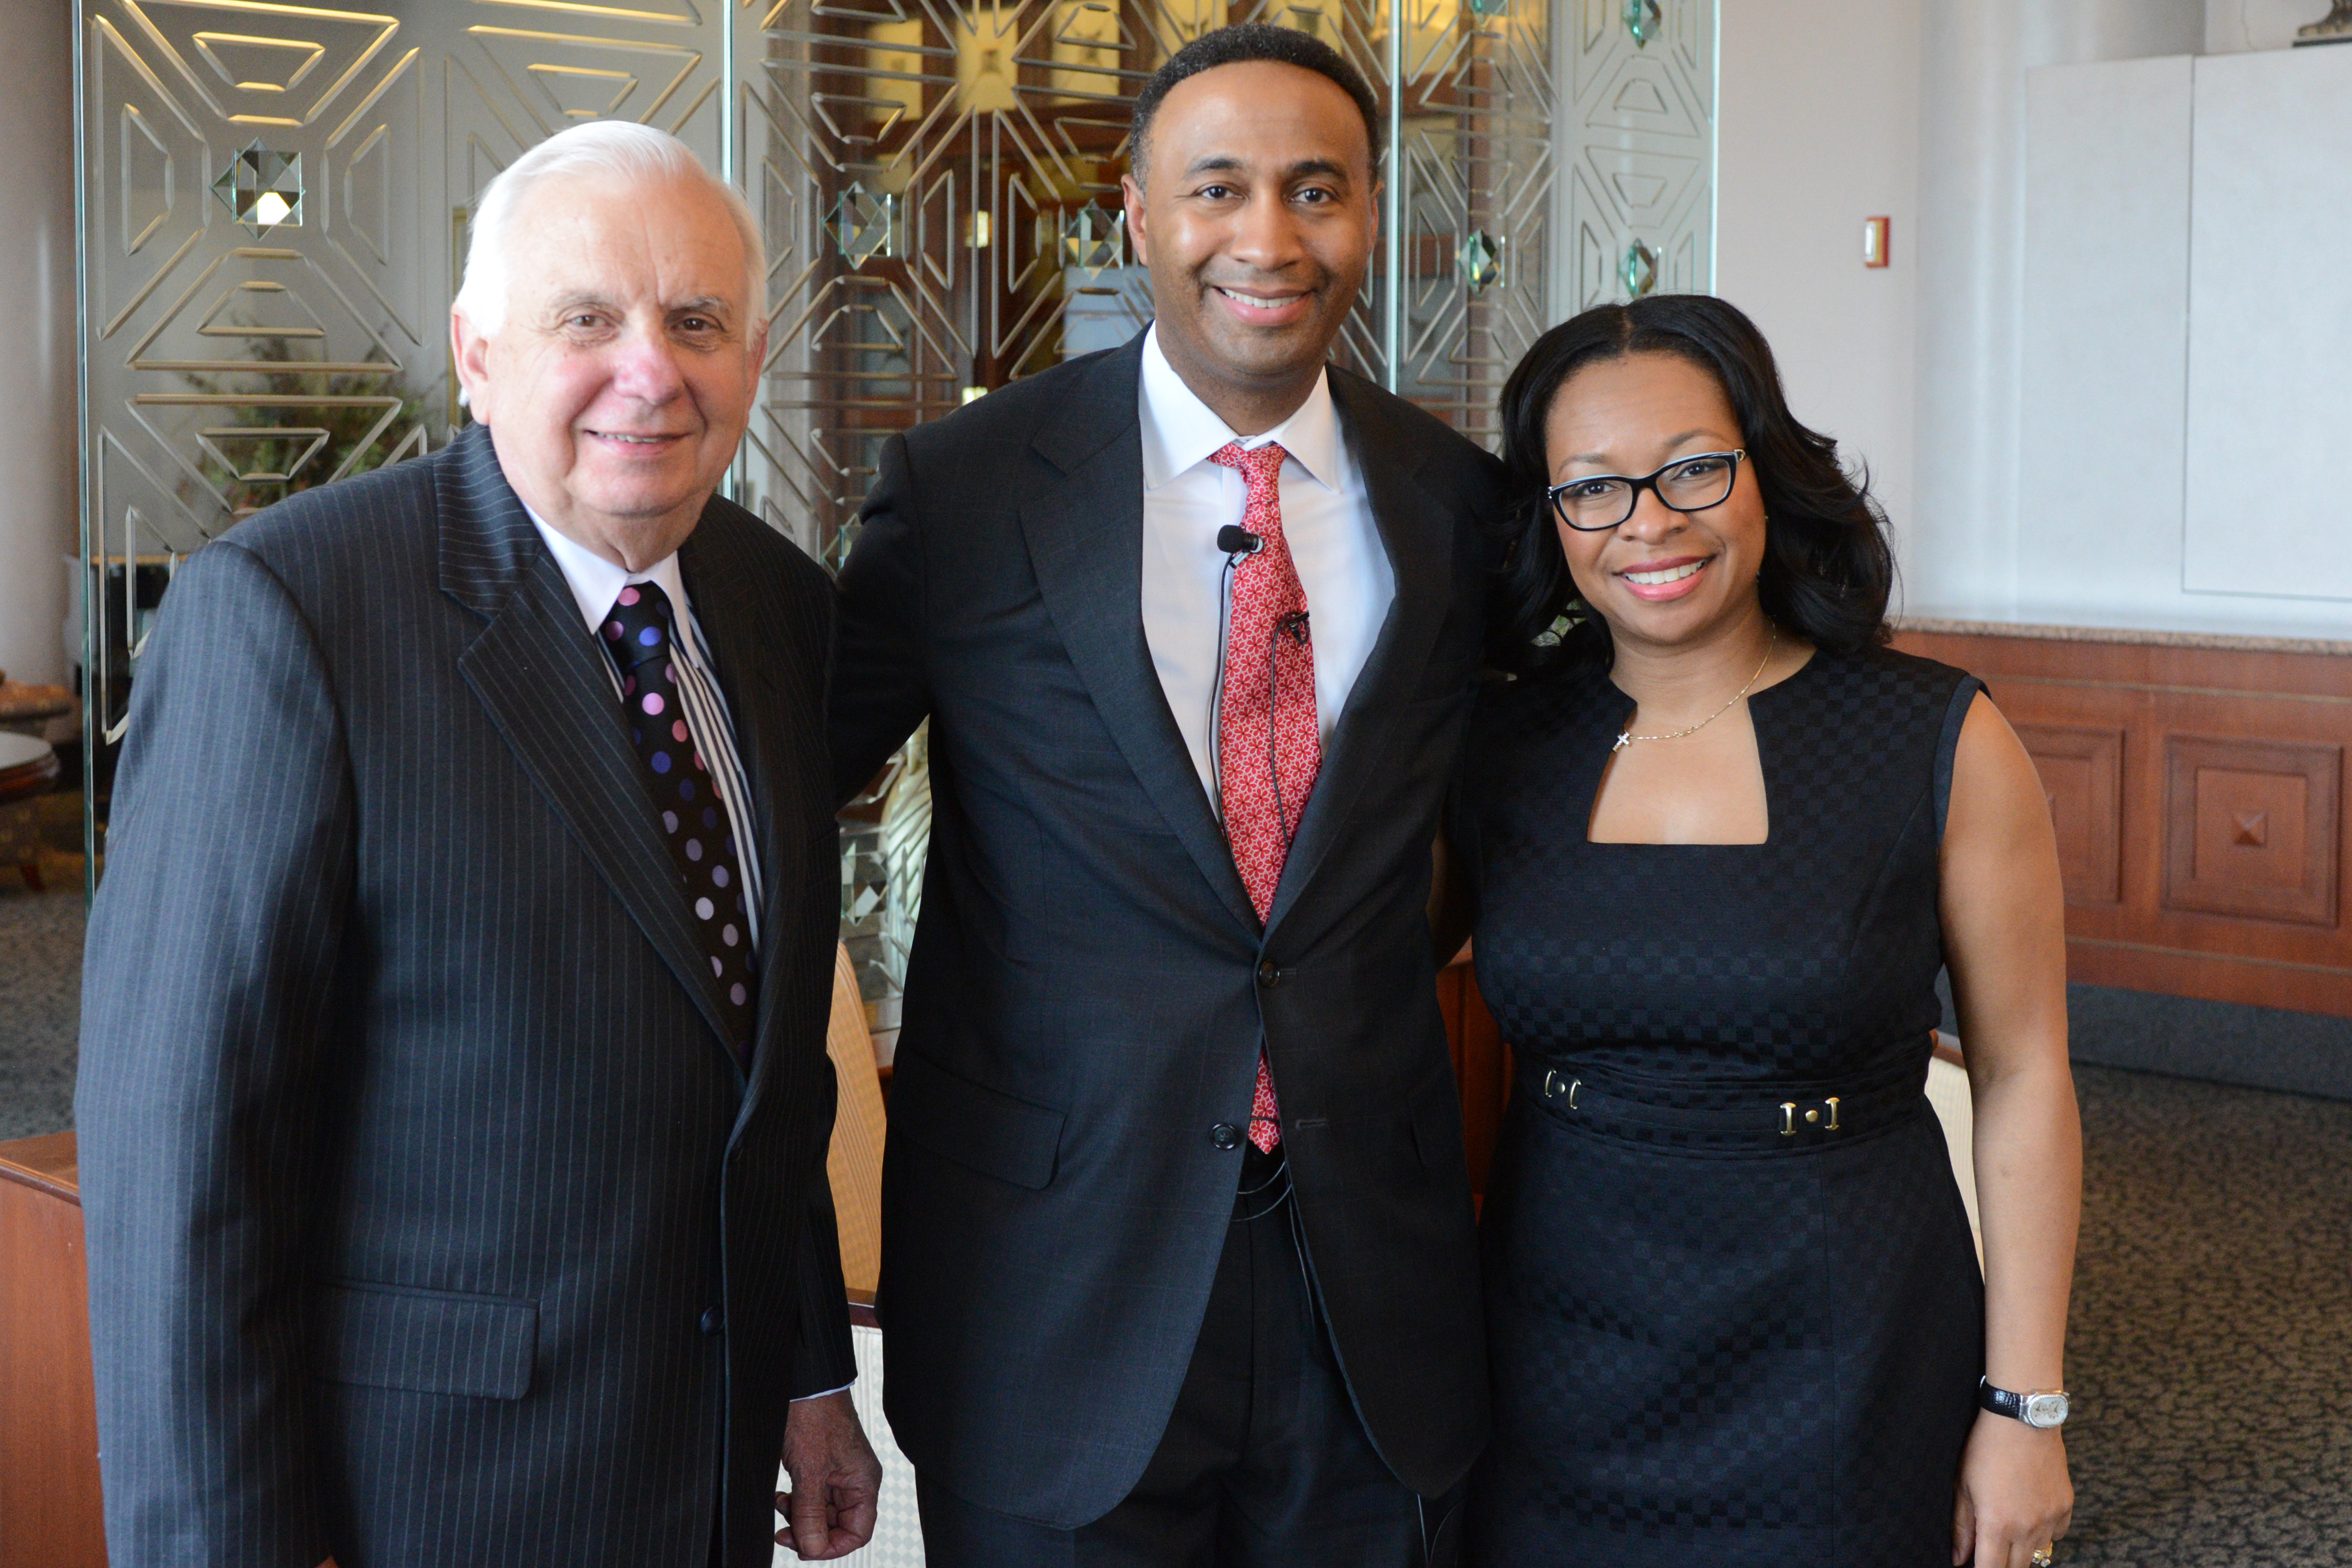 UofL dental school hears from renowned surgeon on patient-centered care